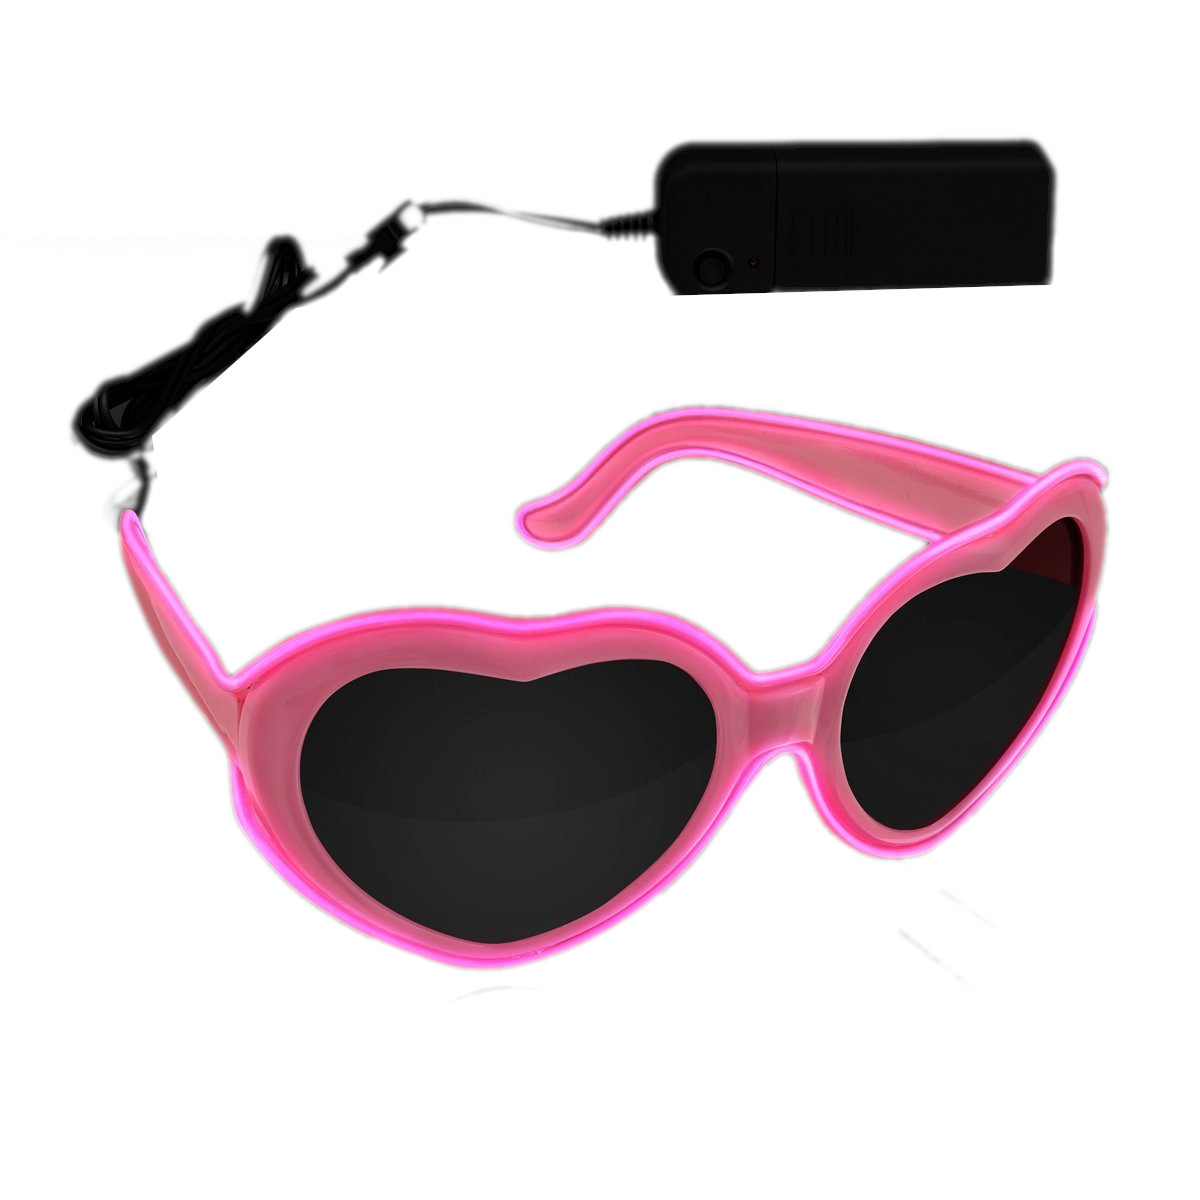 Stylish Heart-Shaped Glowing Pink EL Wire SUNGLASSES